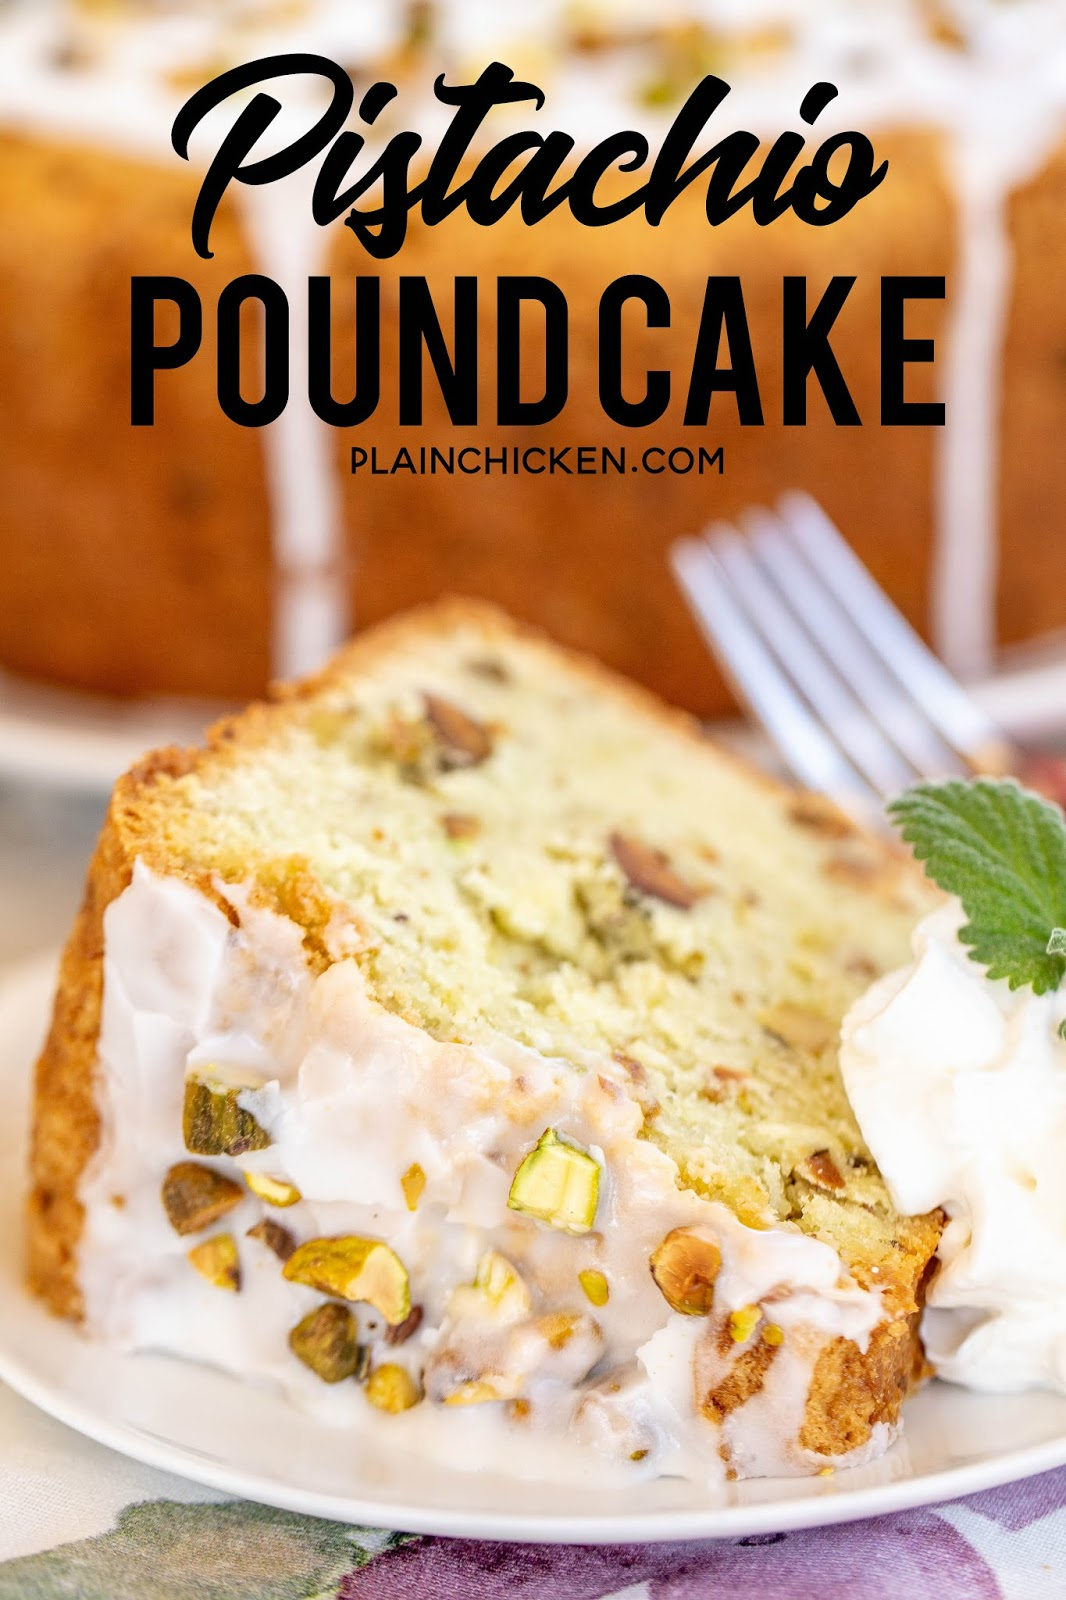 slice of pistachio pound cake on a plate